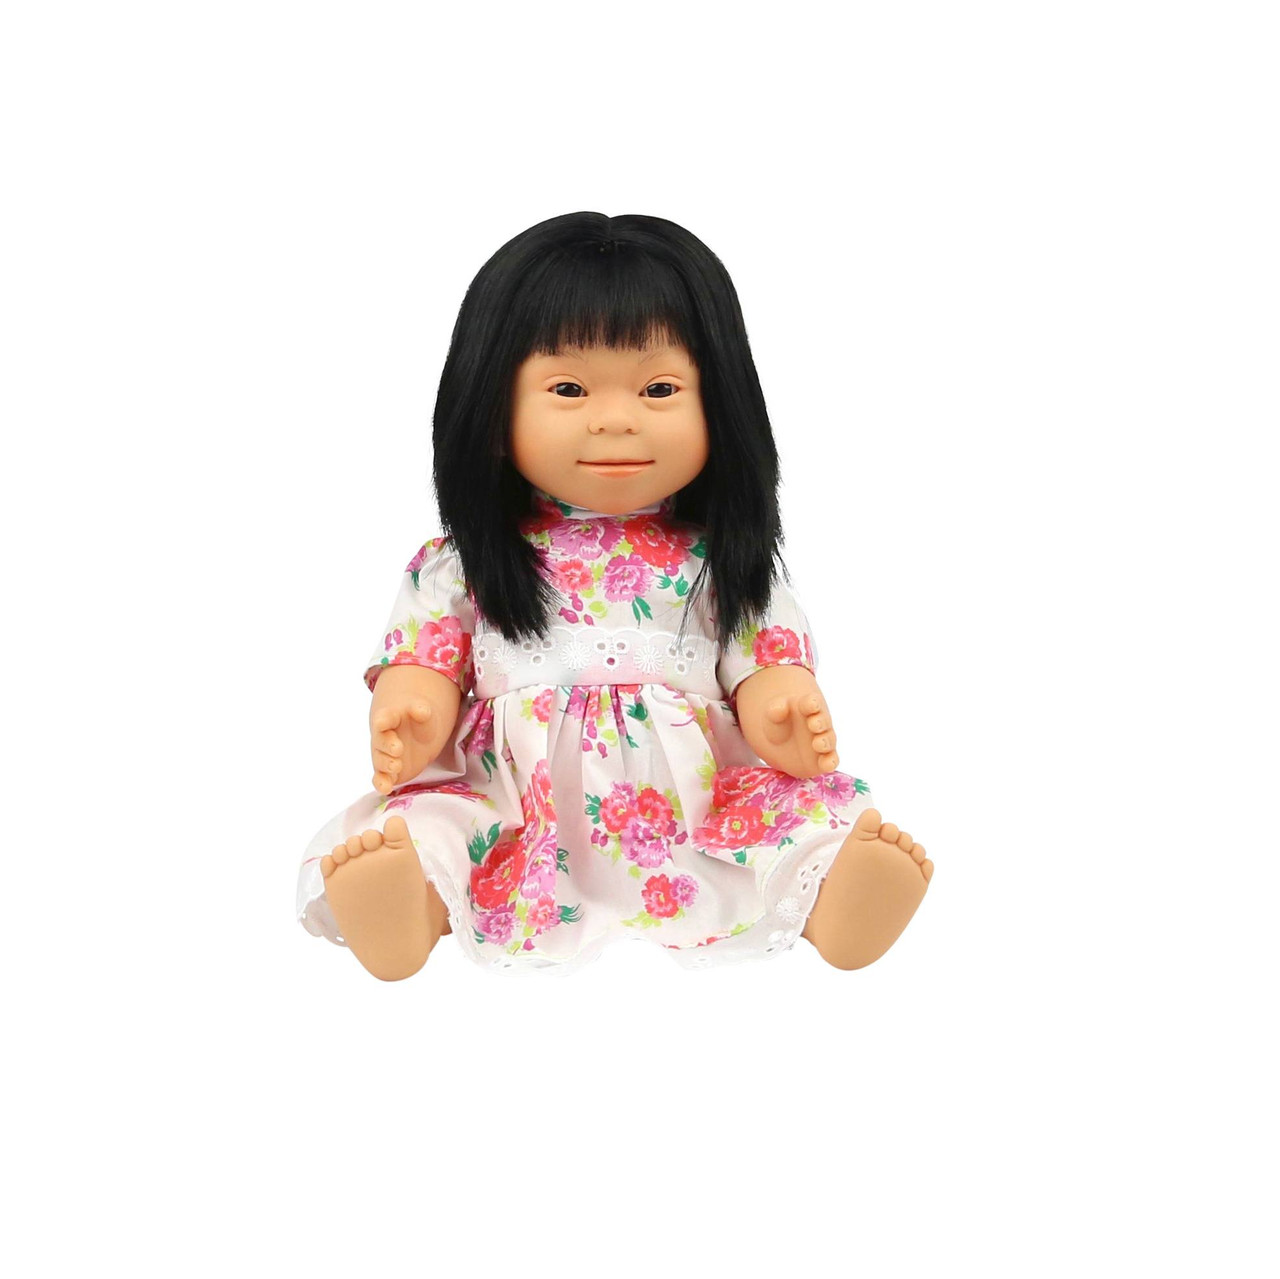 down-syndrome-doll-asian-long-hair-girl-the-spanish-doll-company